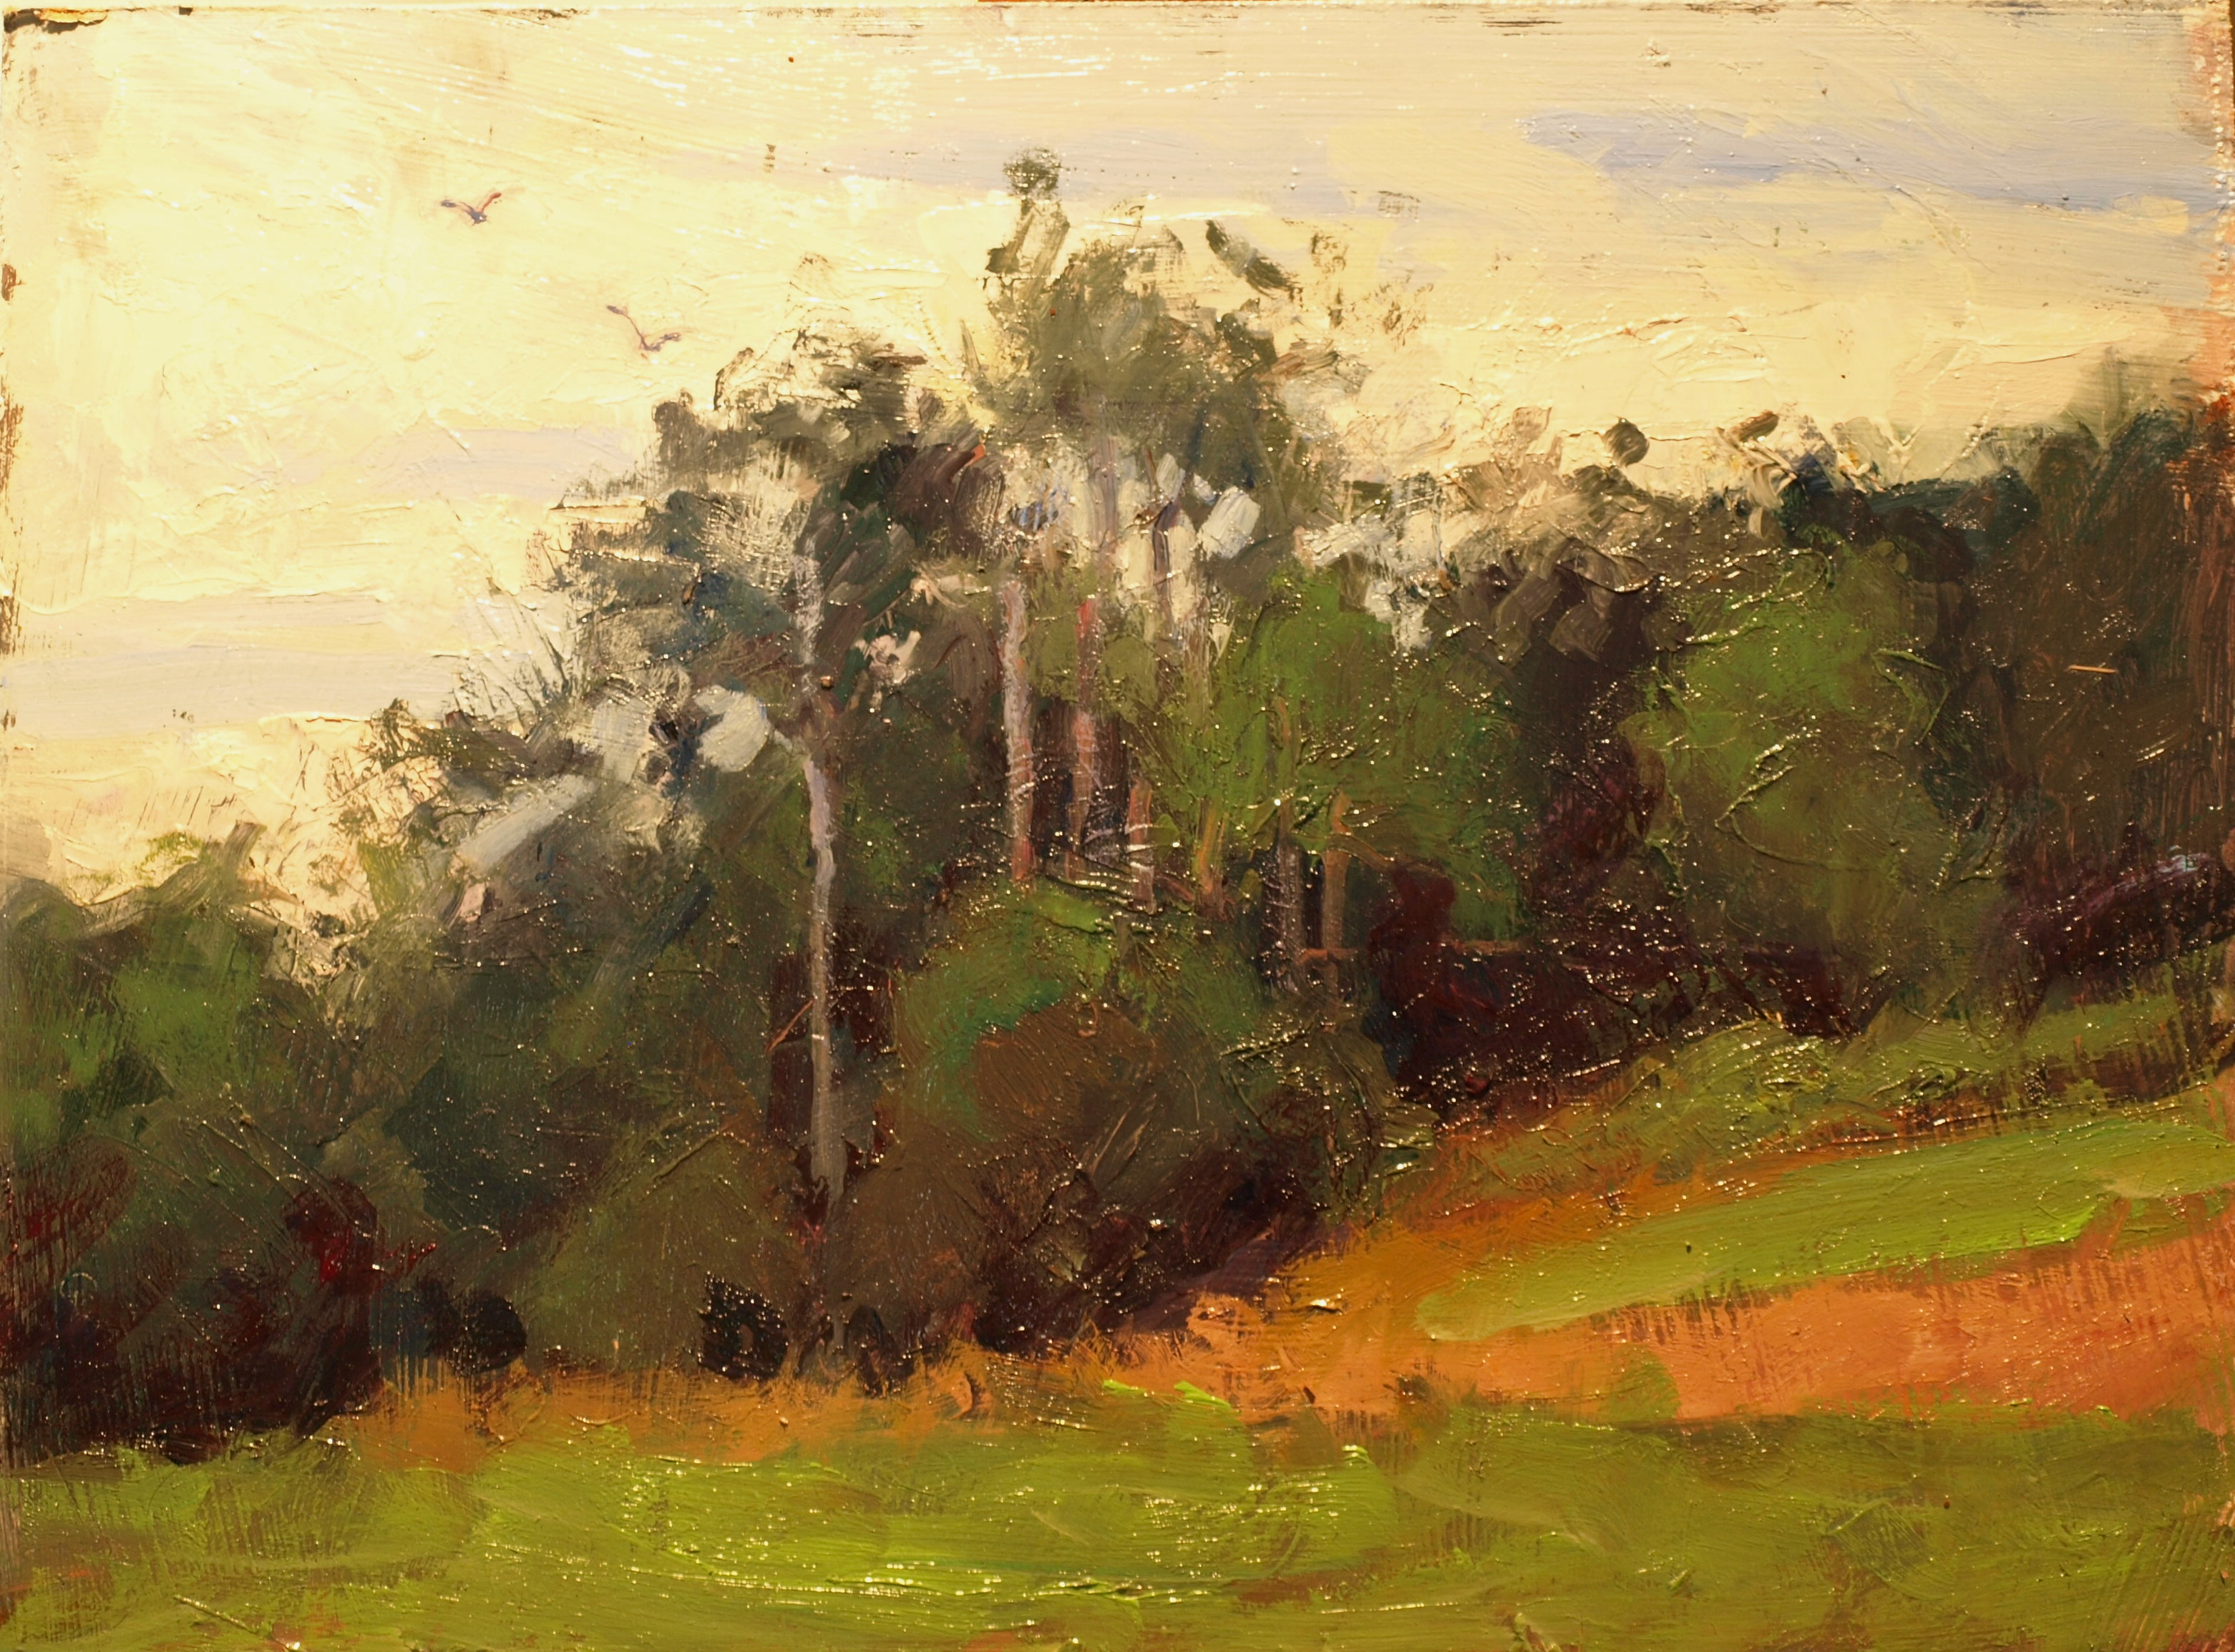 Treeline, Oil on Panel, 12 x 16 Inches, by Susan Grisell, $300